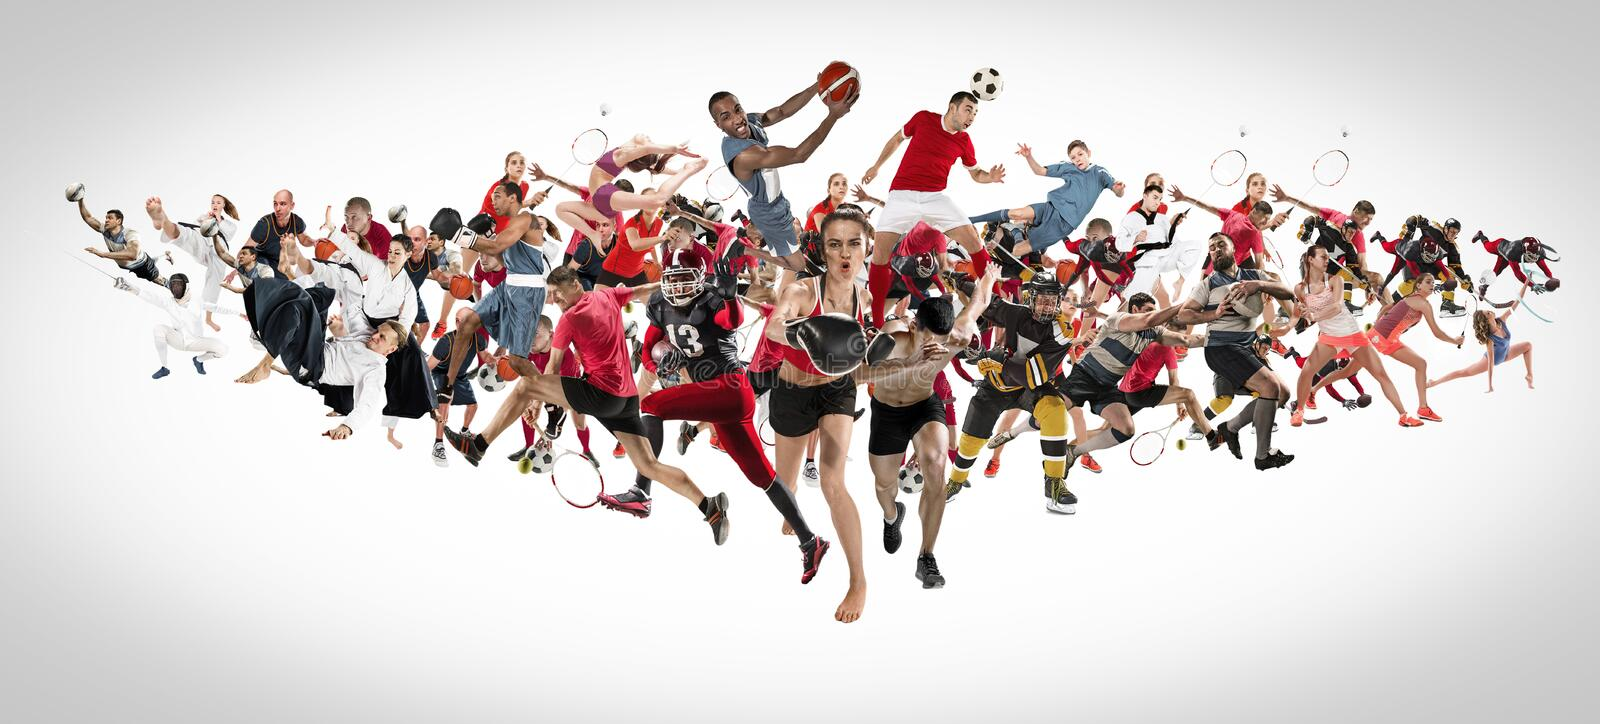 Sport collage about kickboxing, soccer, american football, basketball, ice hockey, badminton, taekwondo, tennis, rugby. Attack. Sport collage about kickboxing royalty free stock image